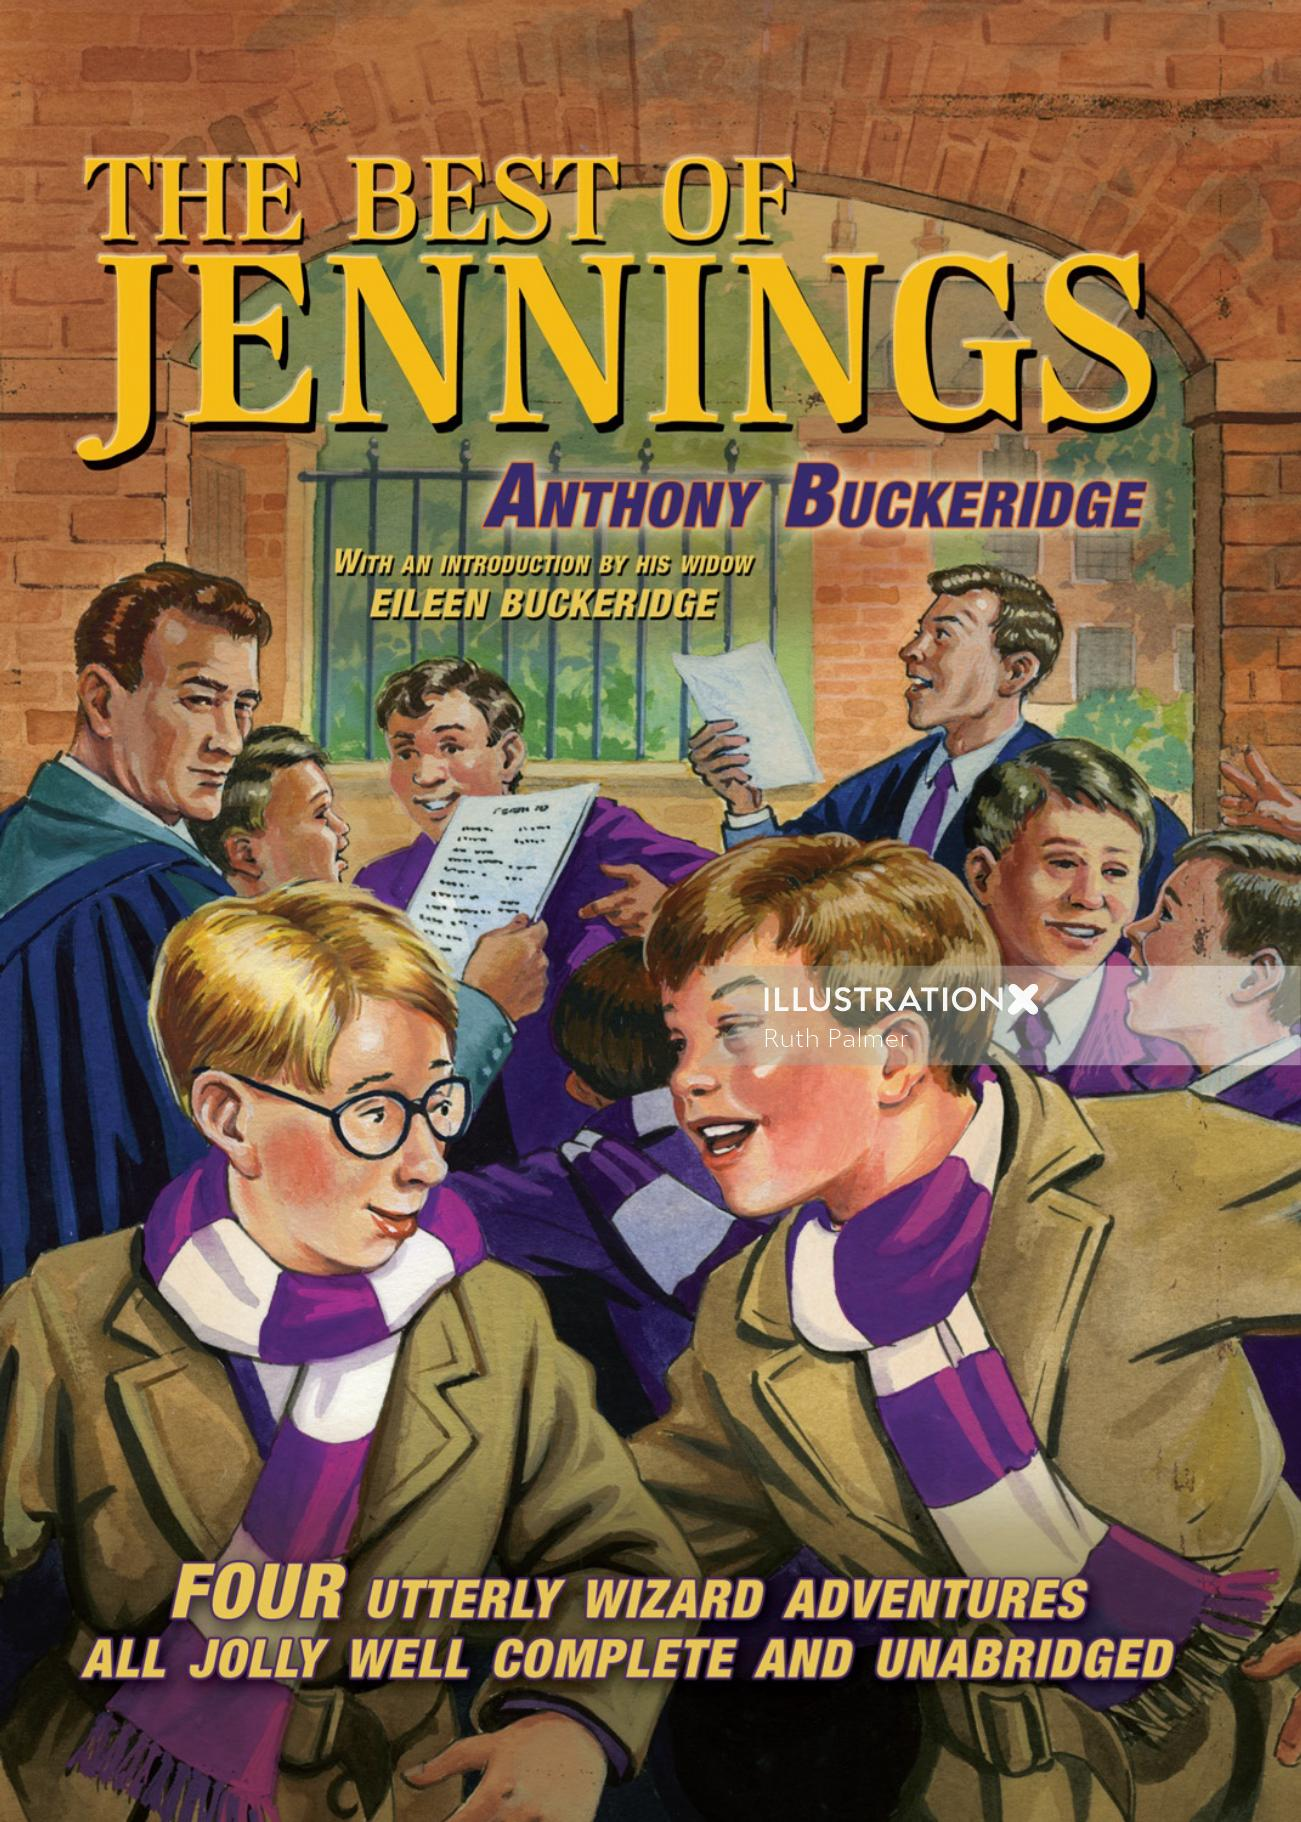 Book cover design of best of Jennings